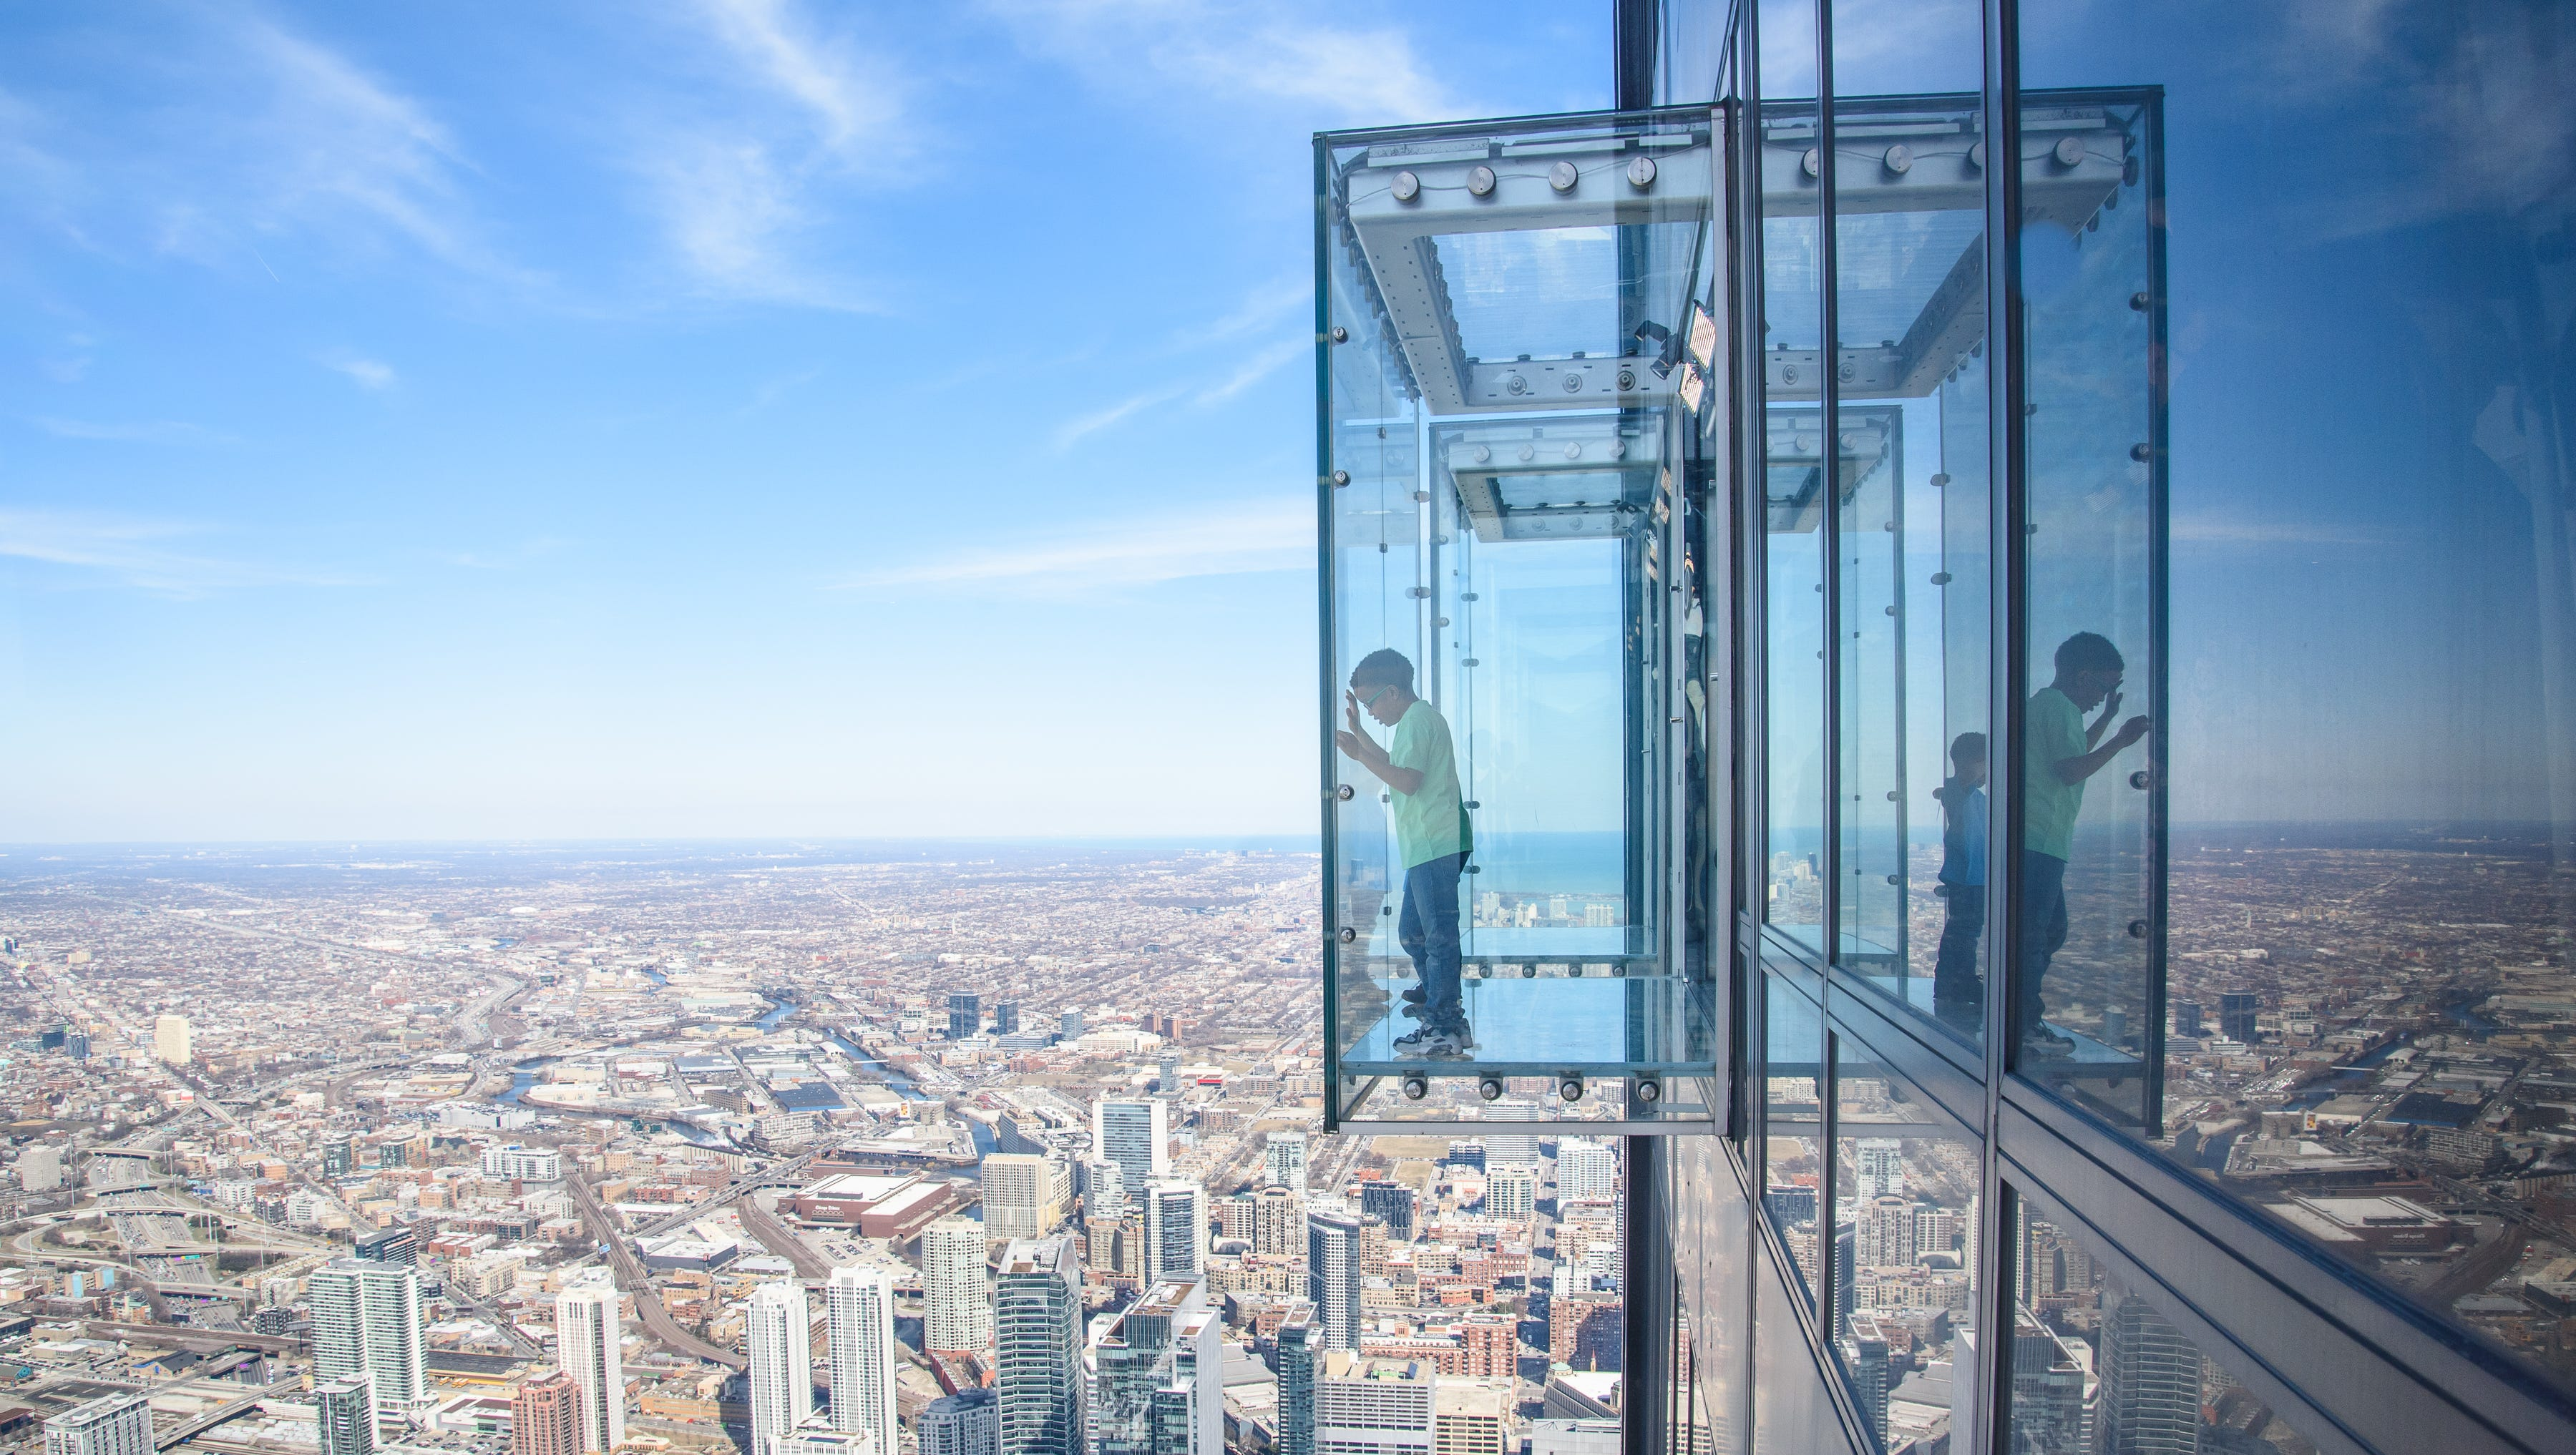 Coating crack temporally closes Skydeck